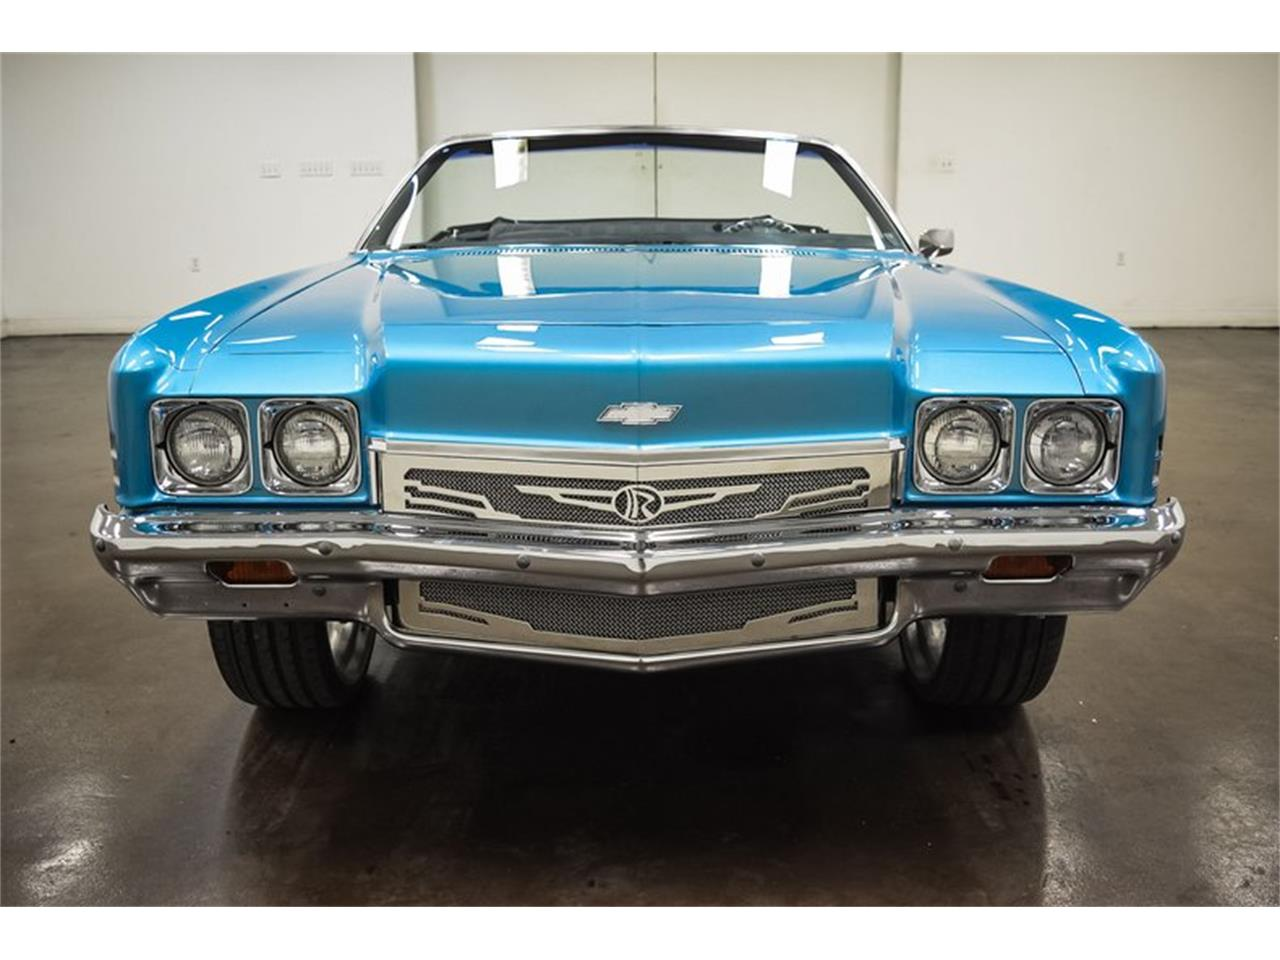 1972 Chevrolet Impala (CC-1377022) for sale in Sherman, Texas